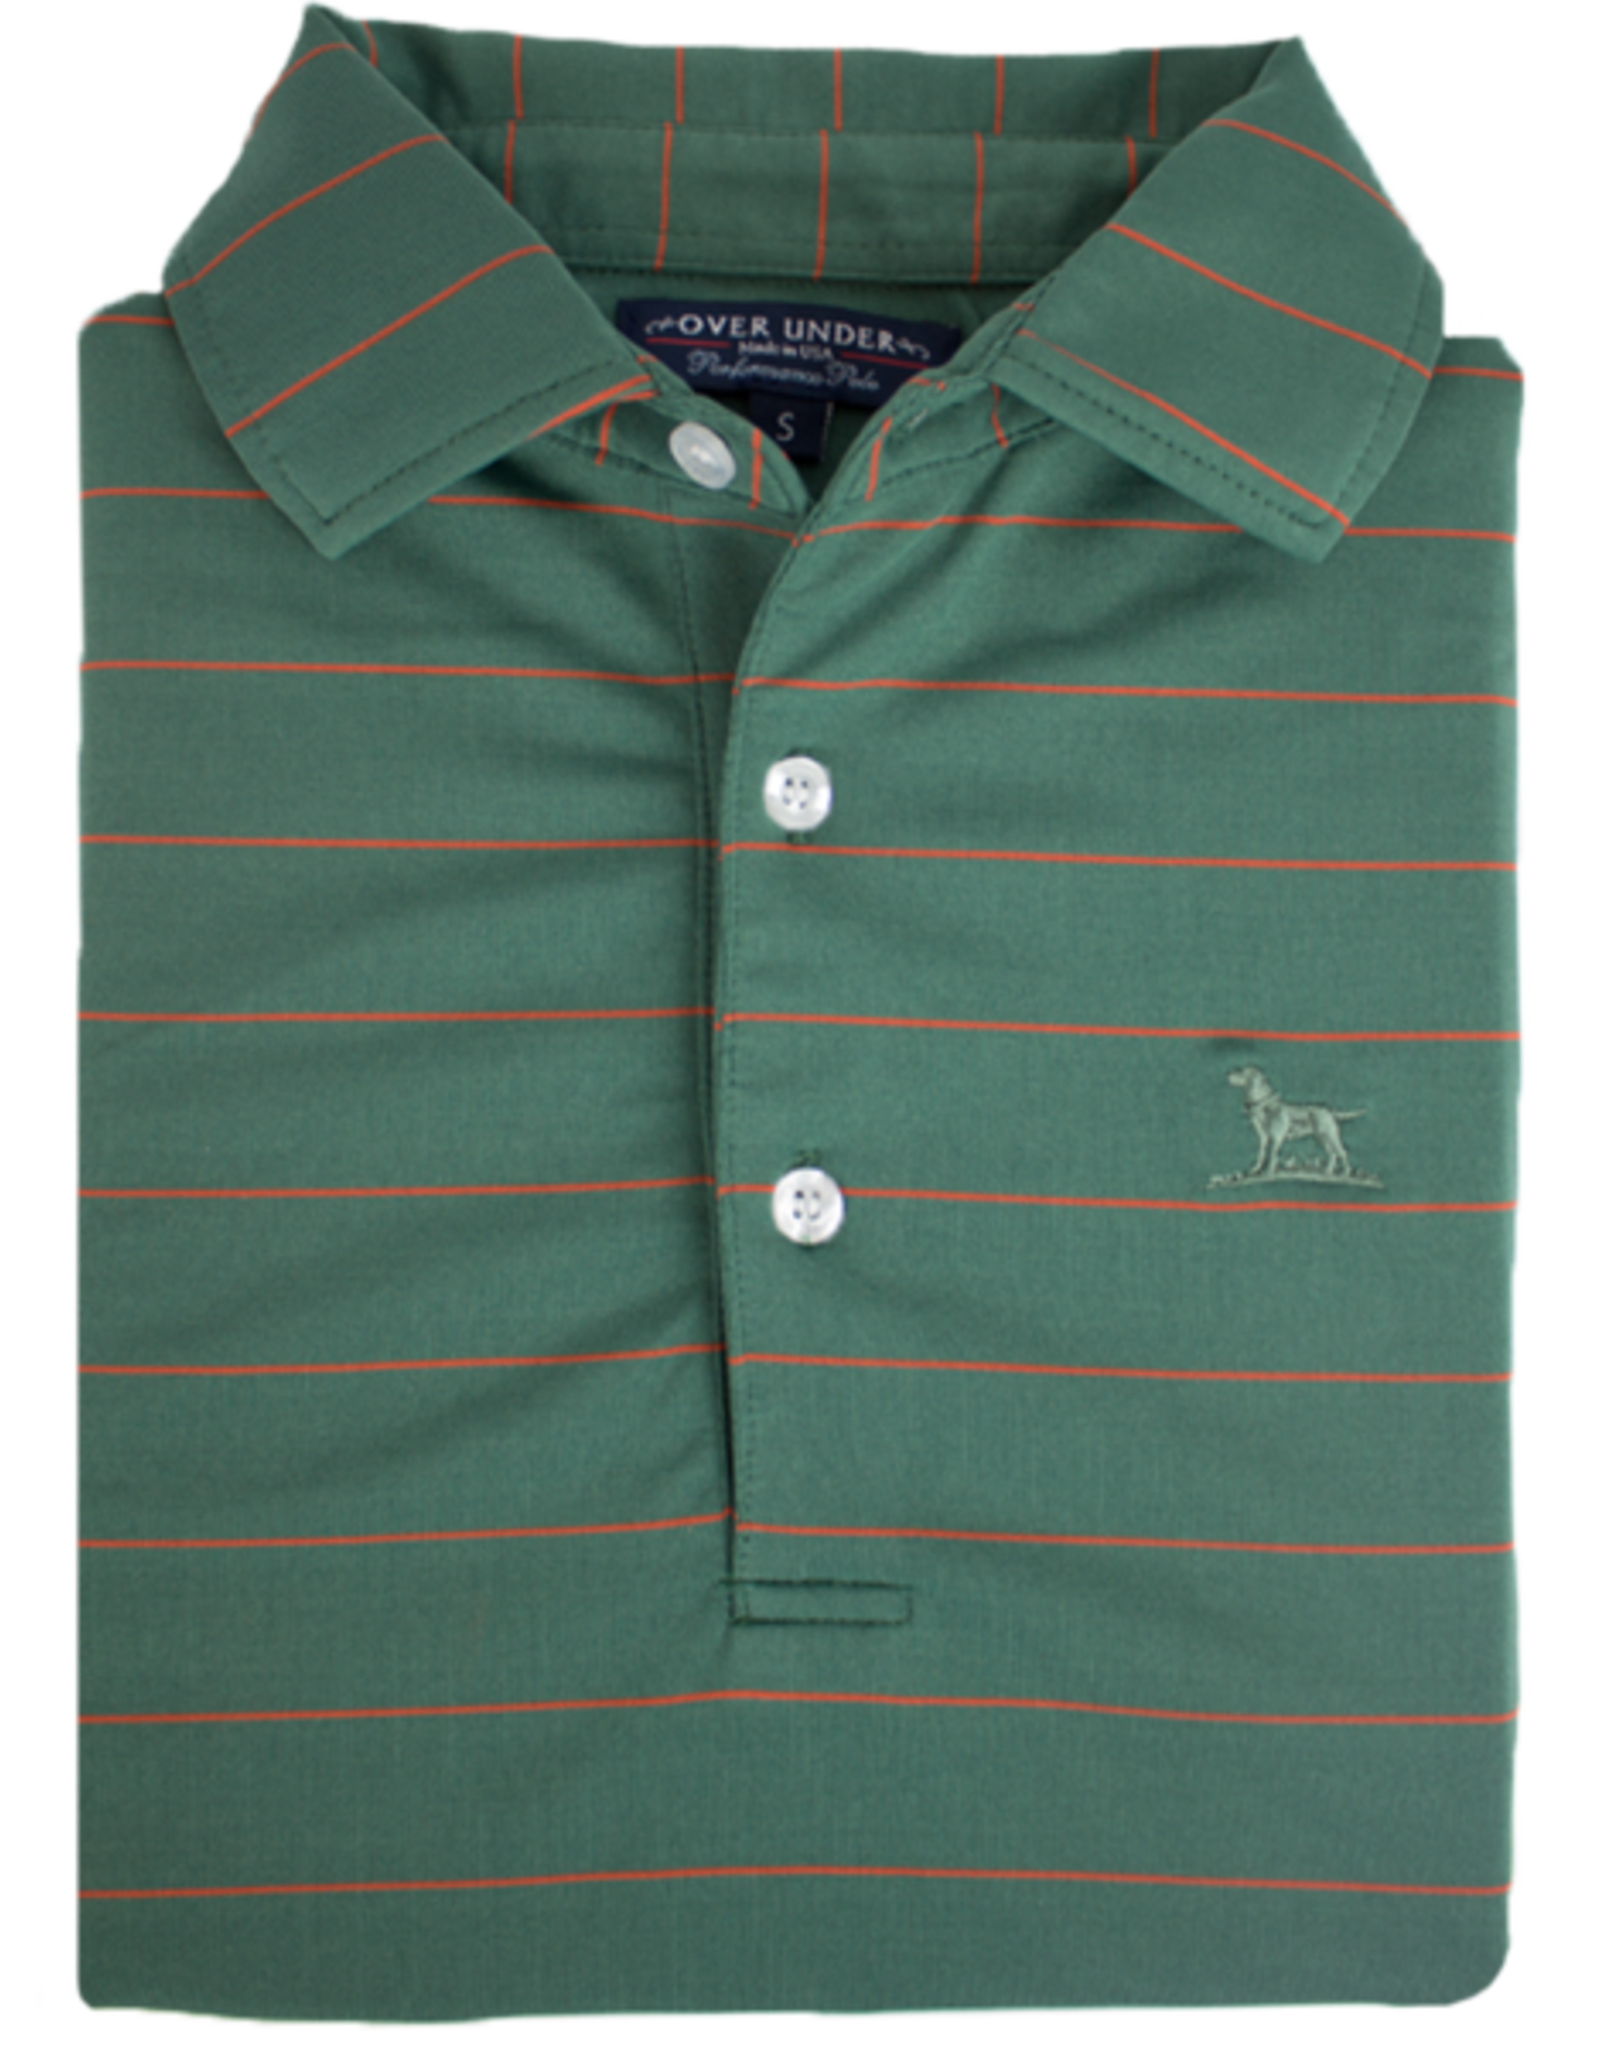 Over Under Performance Polo